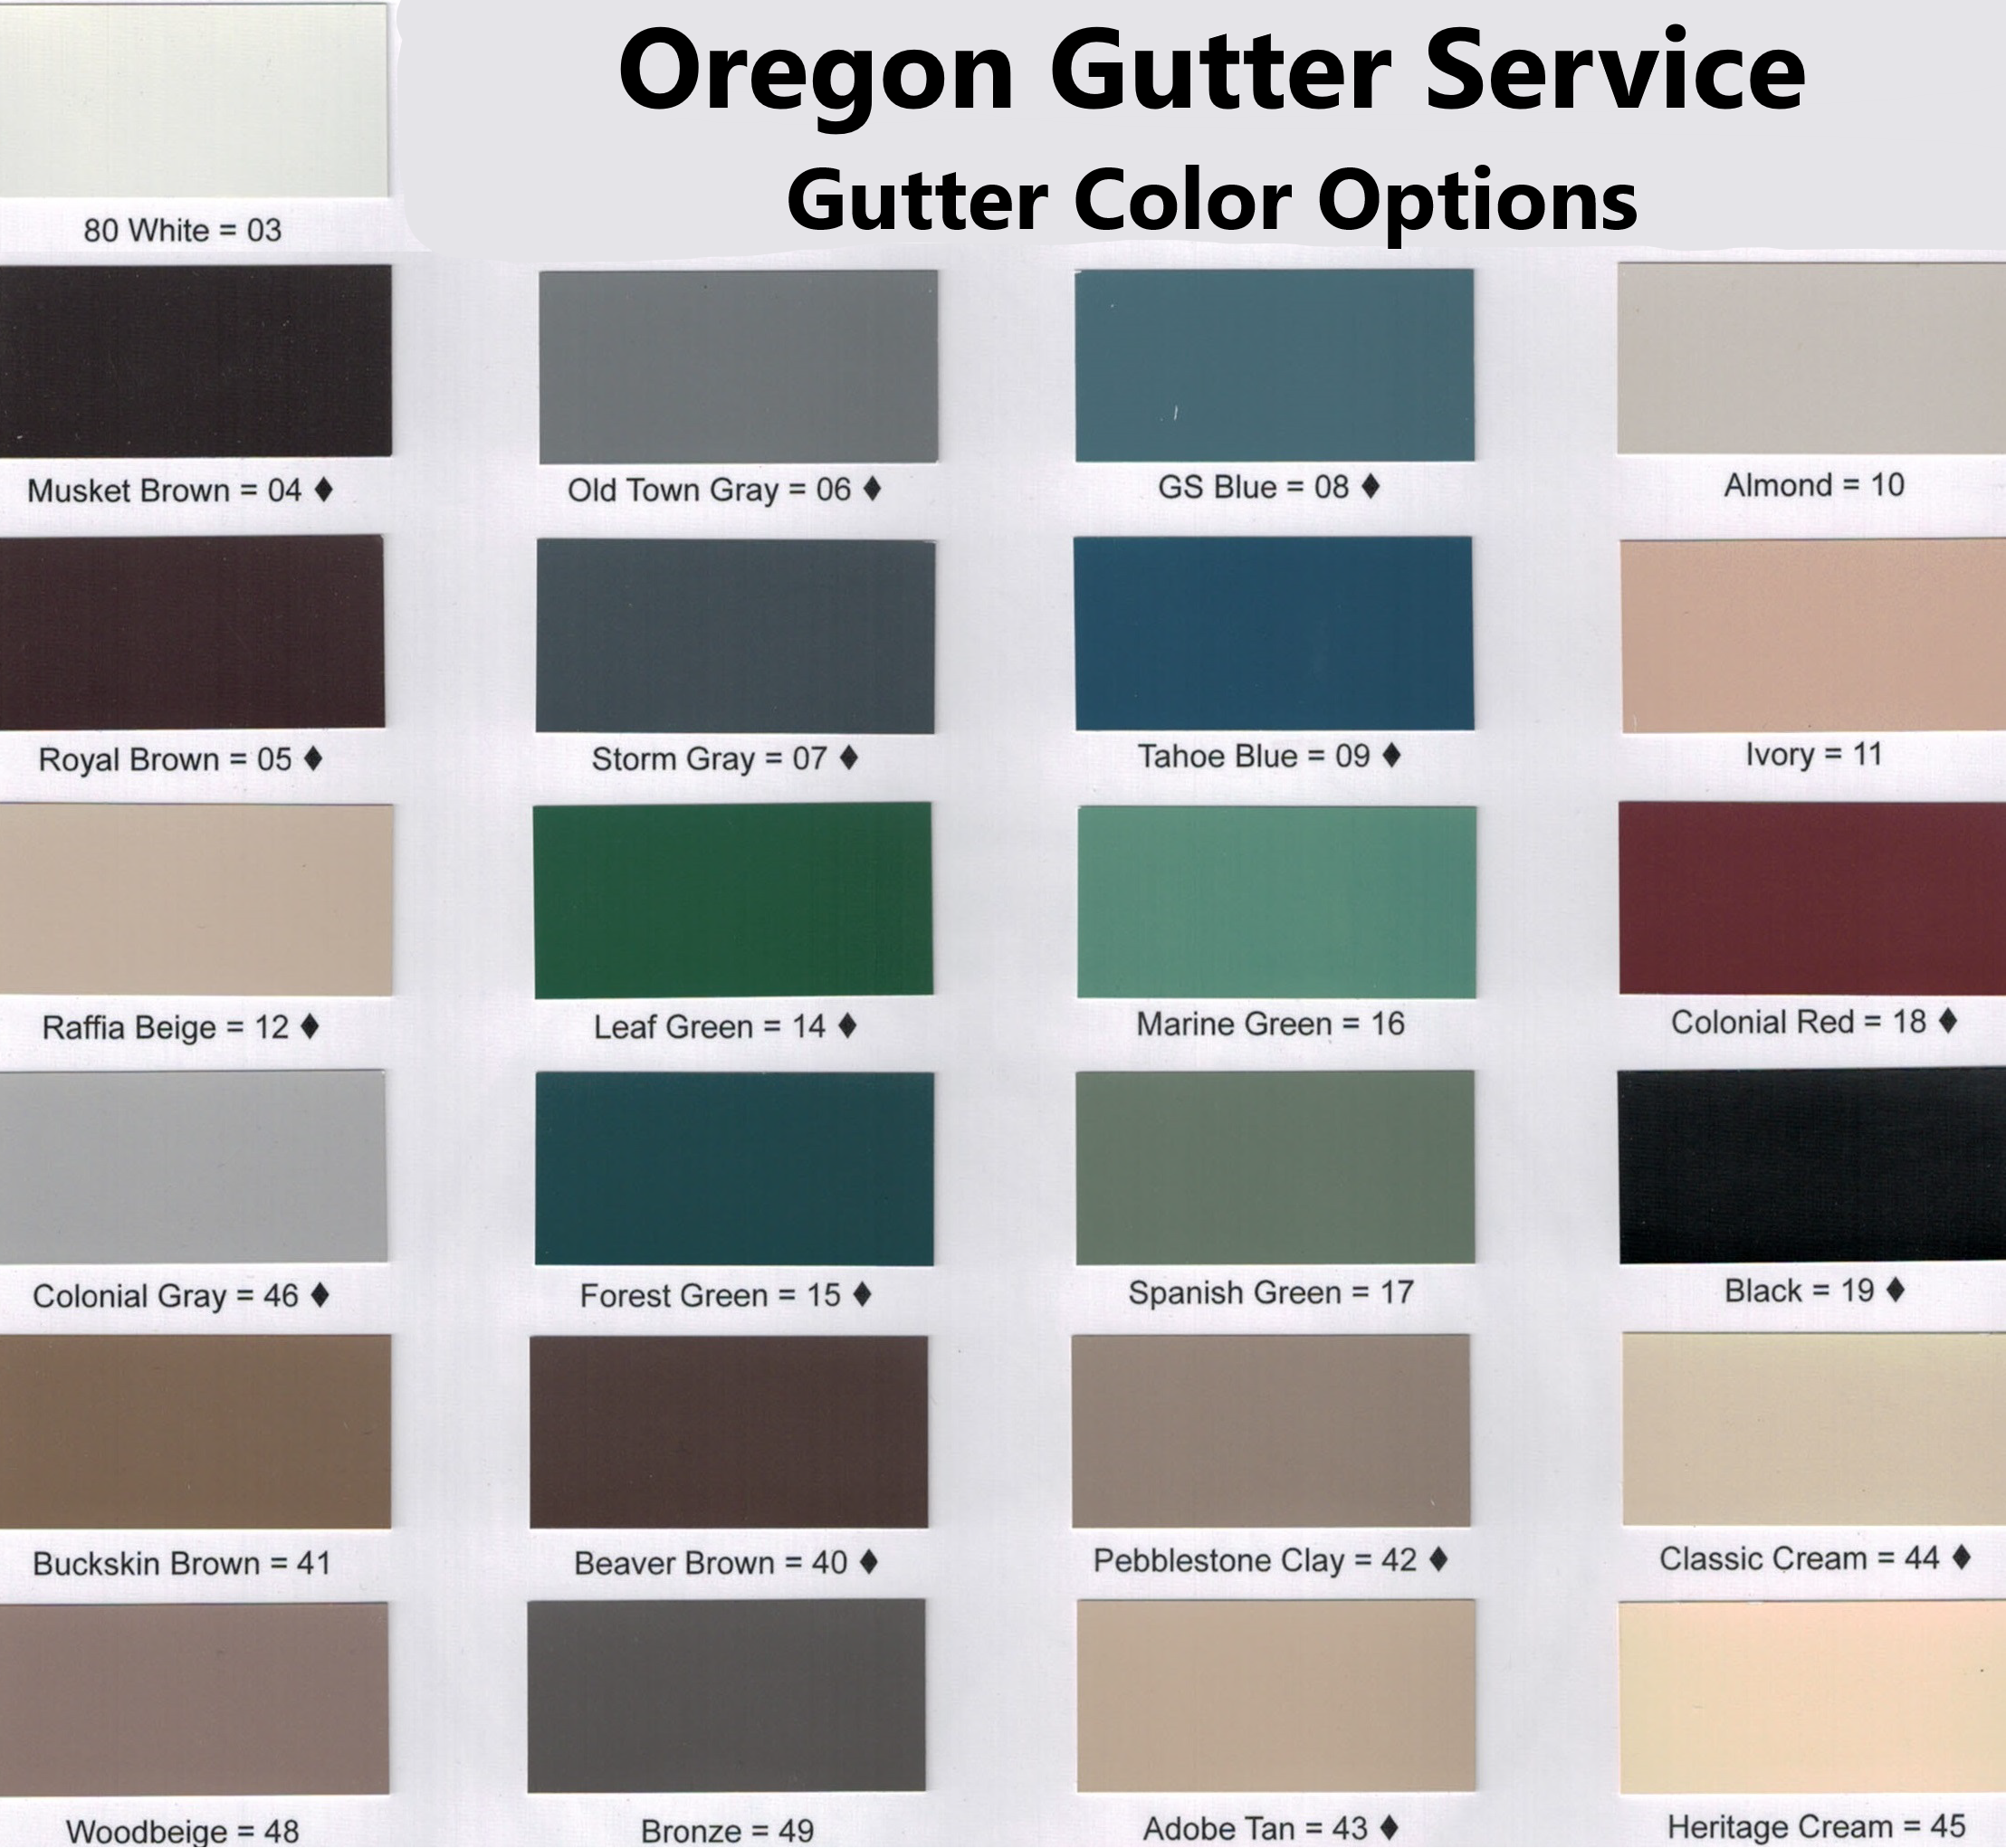 Available Gutter Color Choices